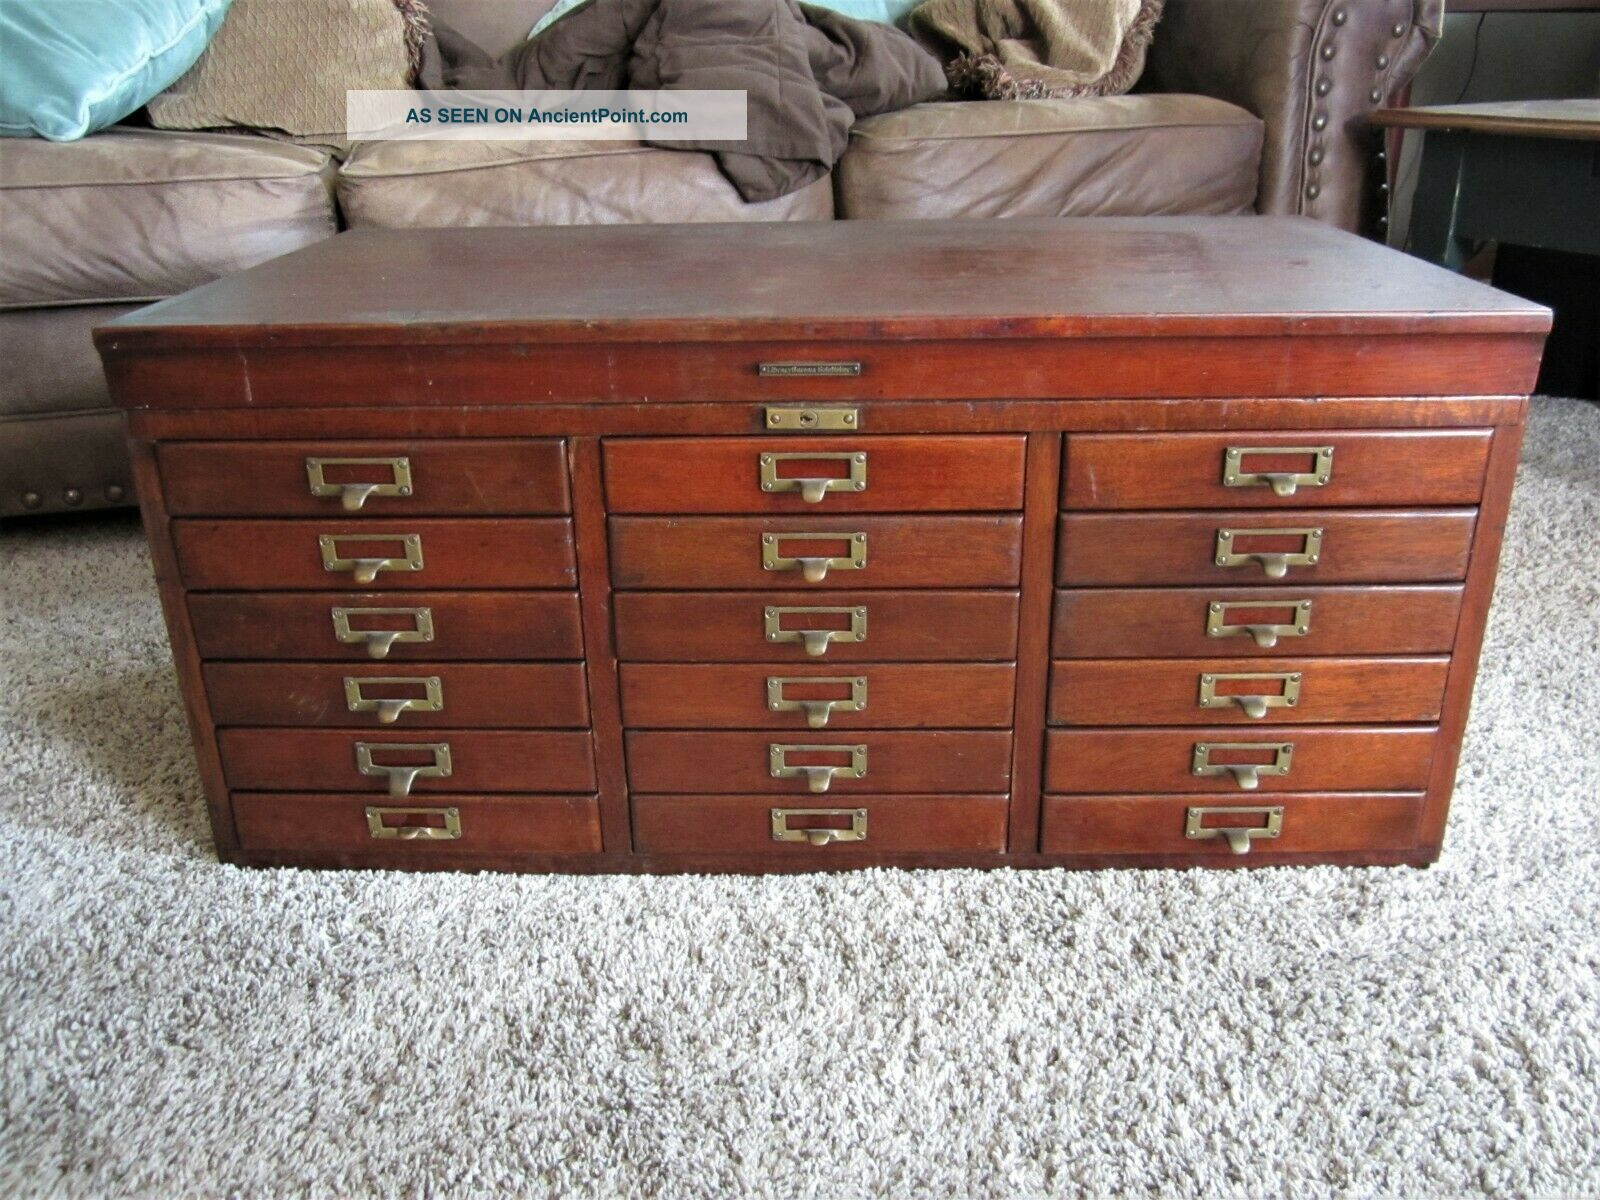 Mahogany Brass Library File Cabinet Wood Dentist Chest Paper Sorter Coffee Table 1900-1950 photo